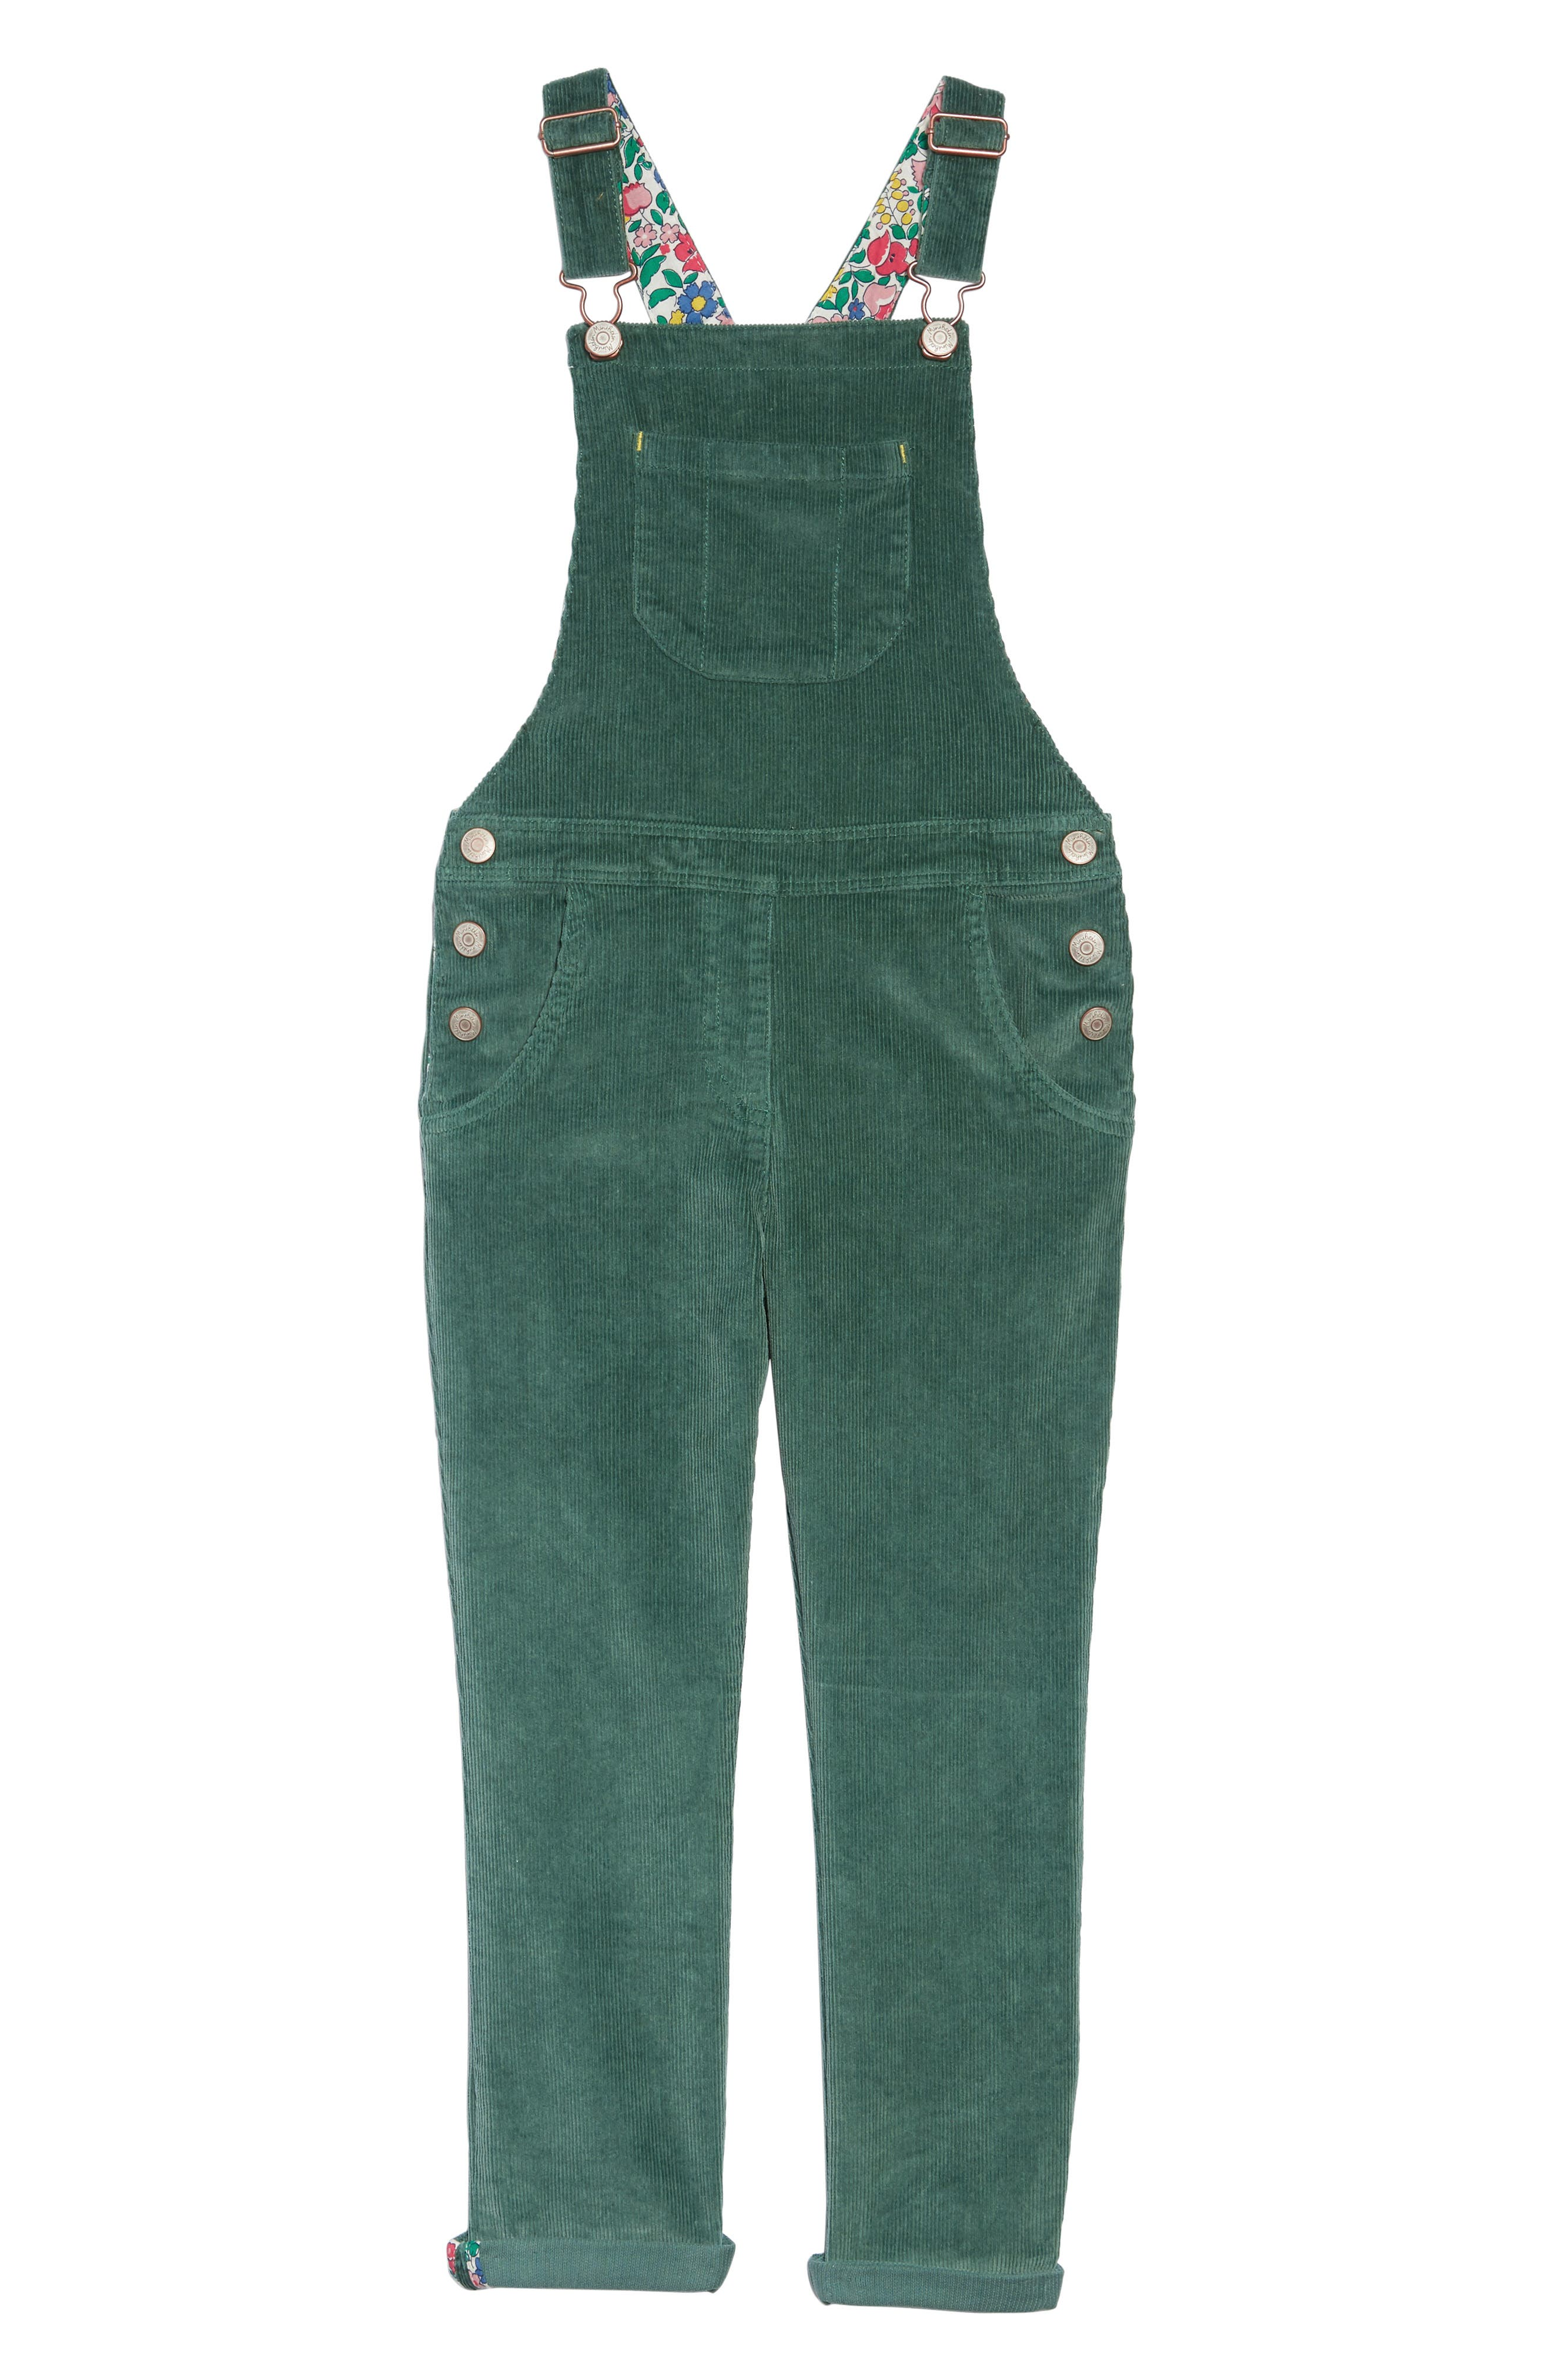 Embroidered Dungaree Overalls,                             Main thumbnail 1, color,                             315